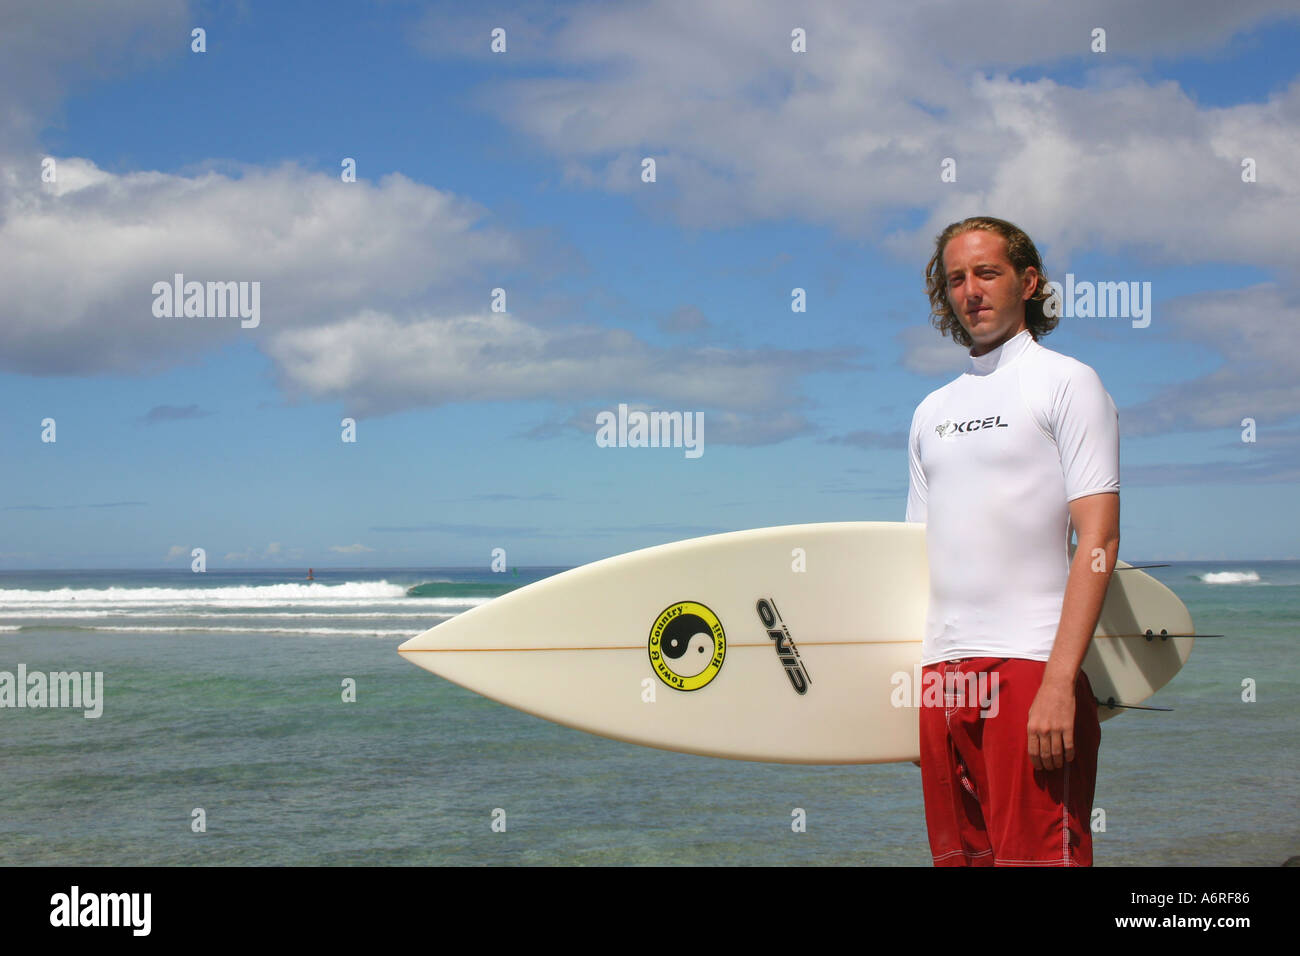 Man in white rash guard holding surfboard against partly cloudy sky and ocean waves in background Honolulu Oahu - Stock Image